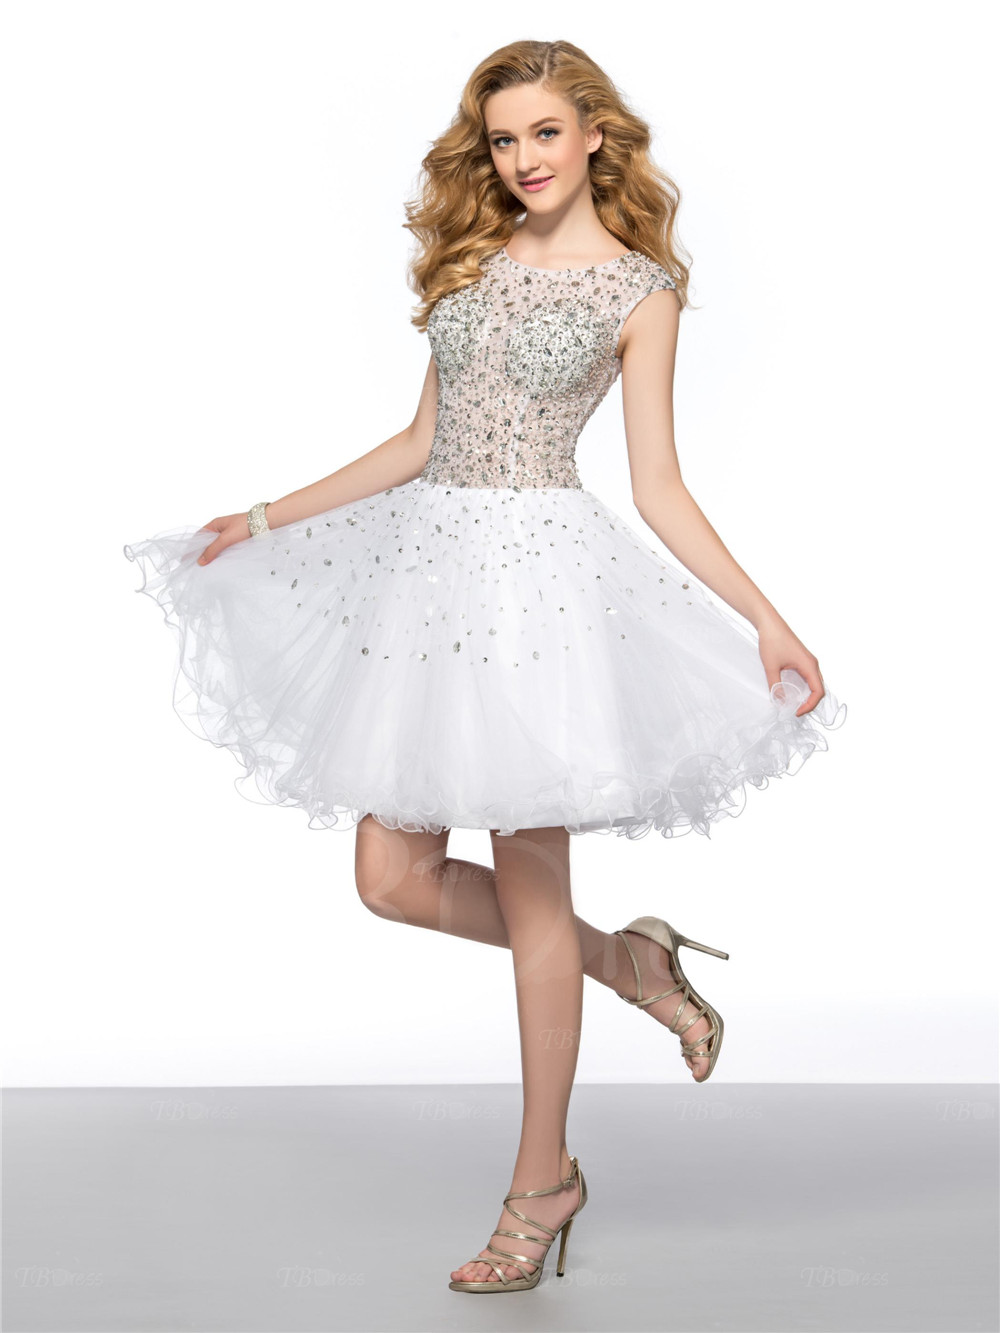 Junior Prom Dresses In White - Homecoming Prom Dresses